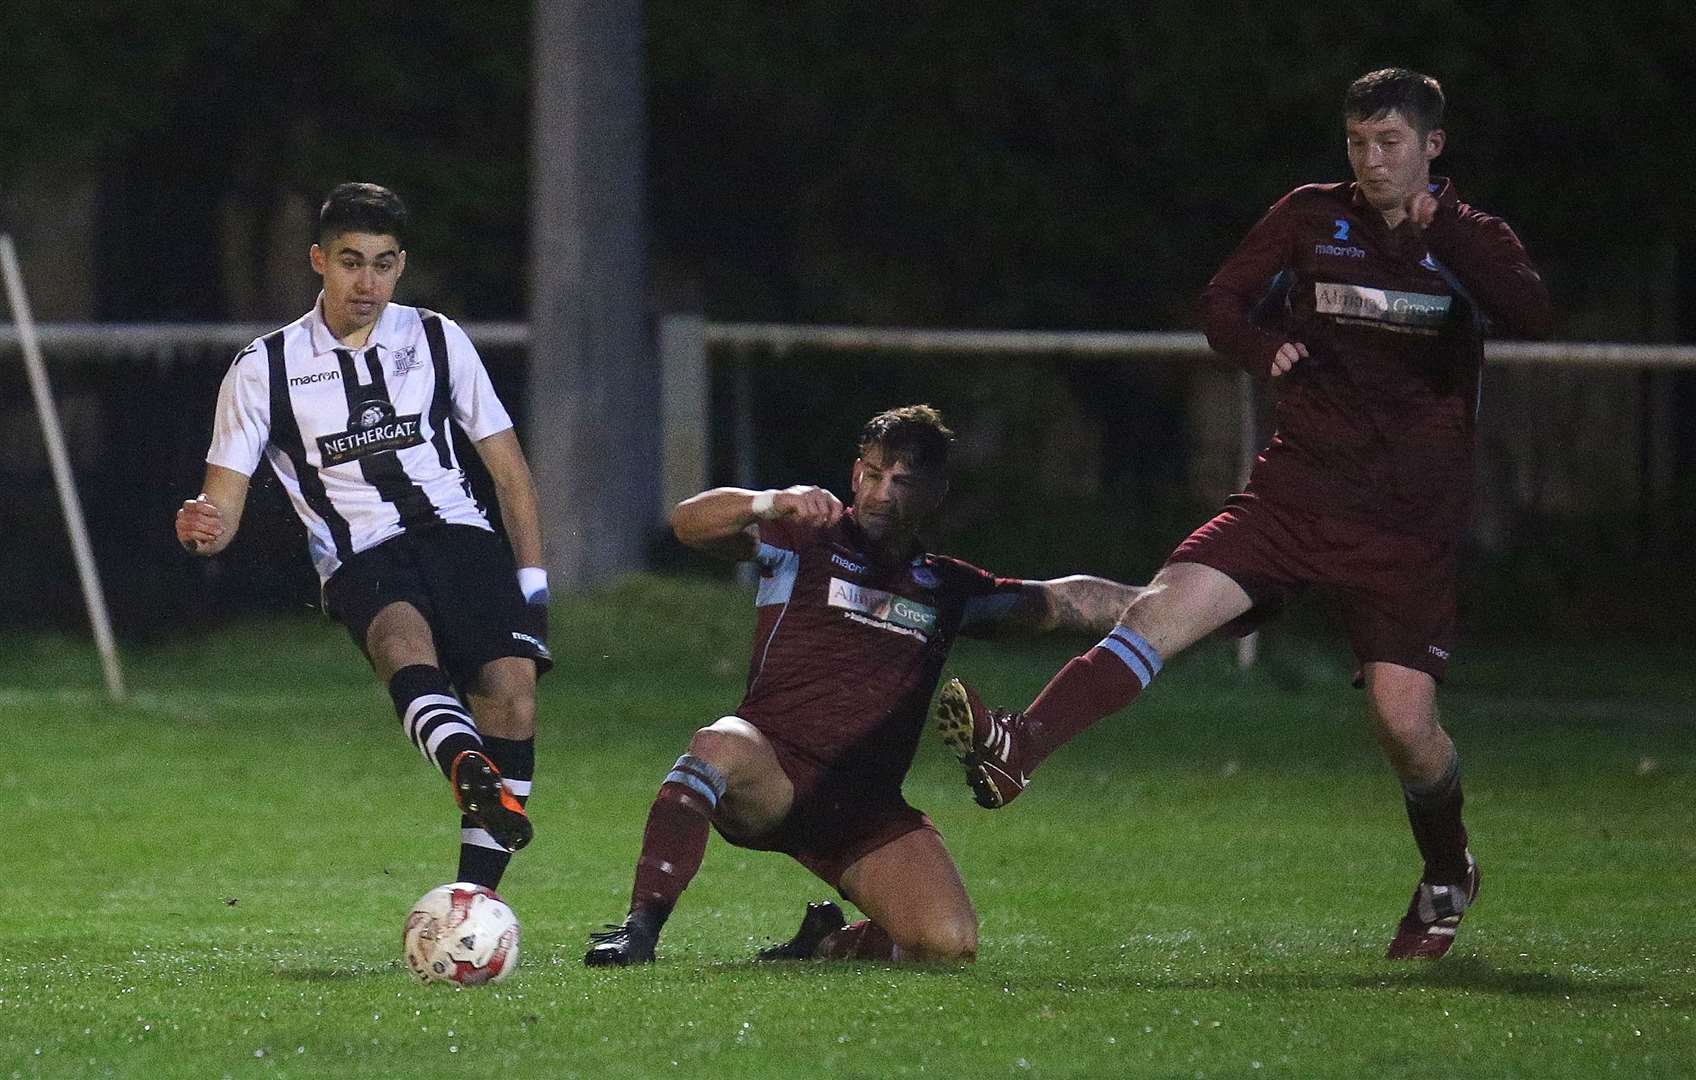 Pablo Chaves scored twice for Long Melford in last Friday's win at Brantham Athletic Picture: Richard Marsham